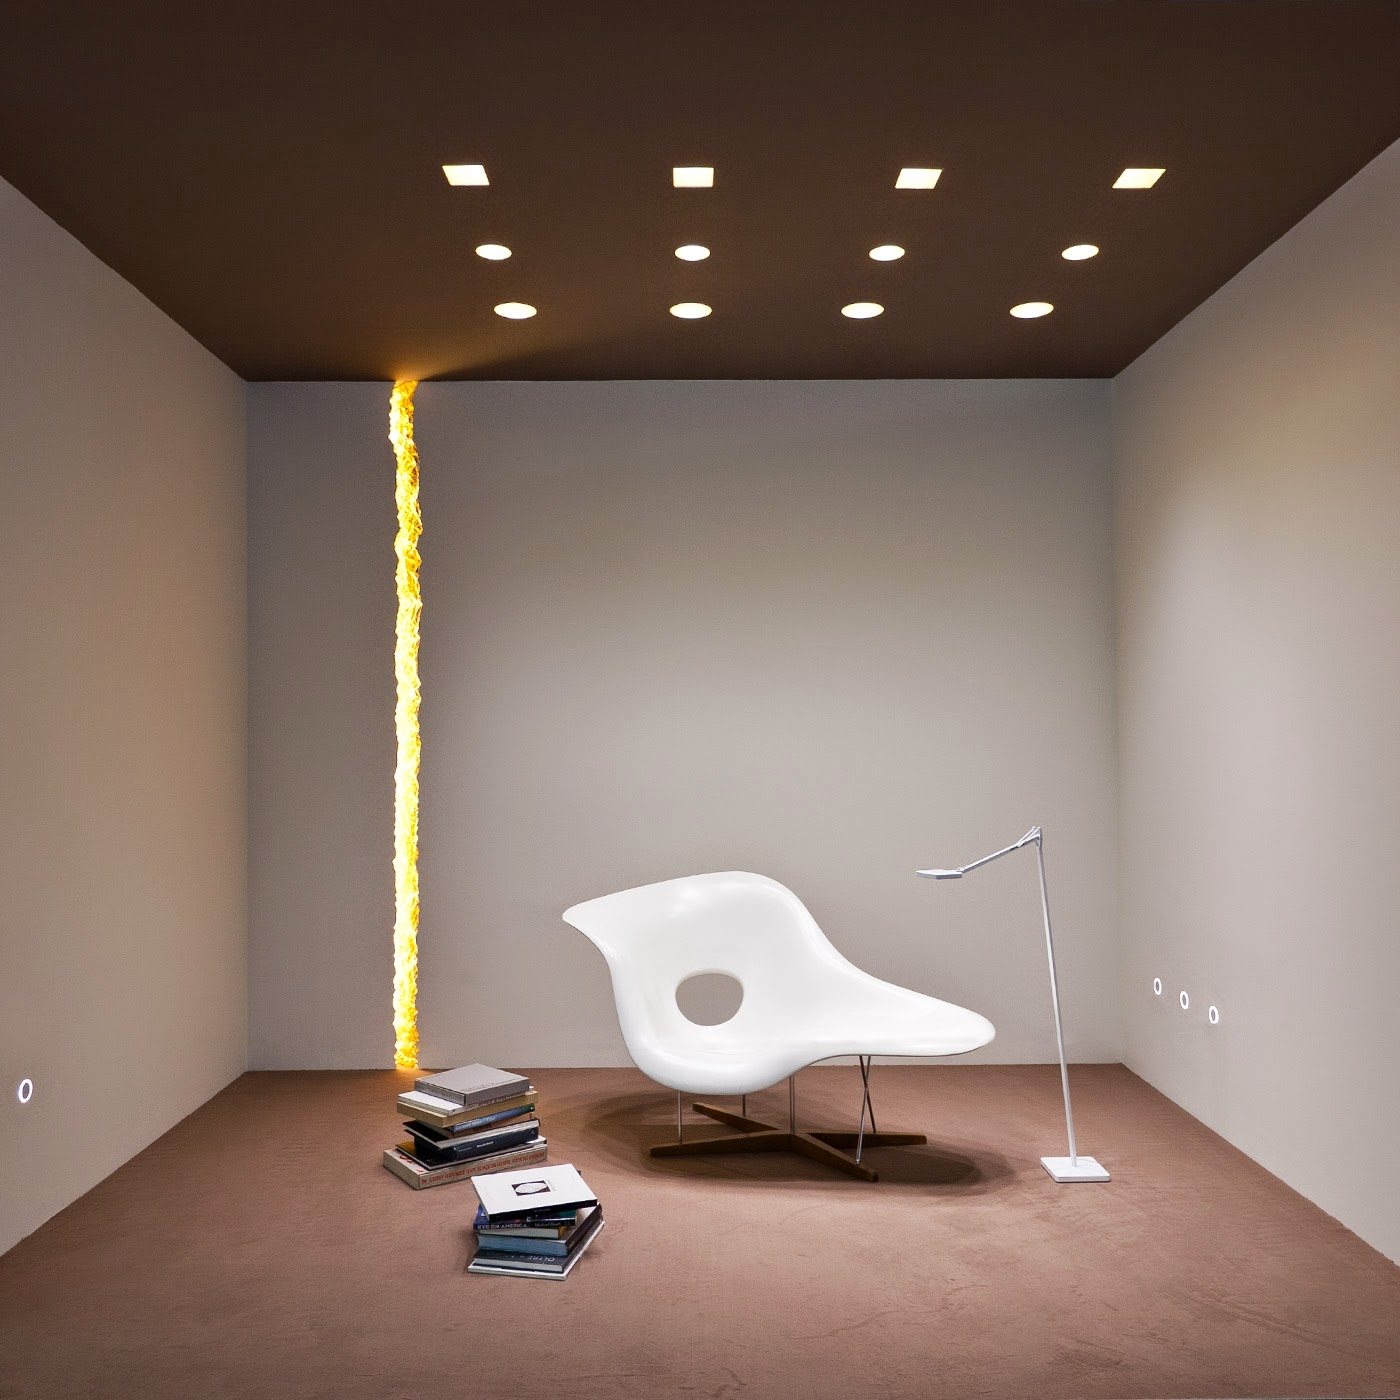 Wall Rupture Architectural Wall Strip Light